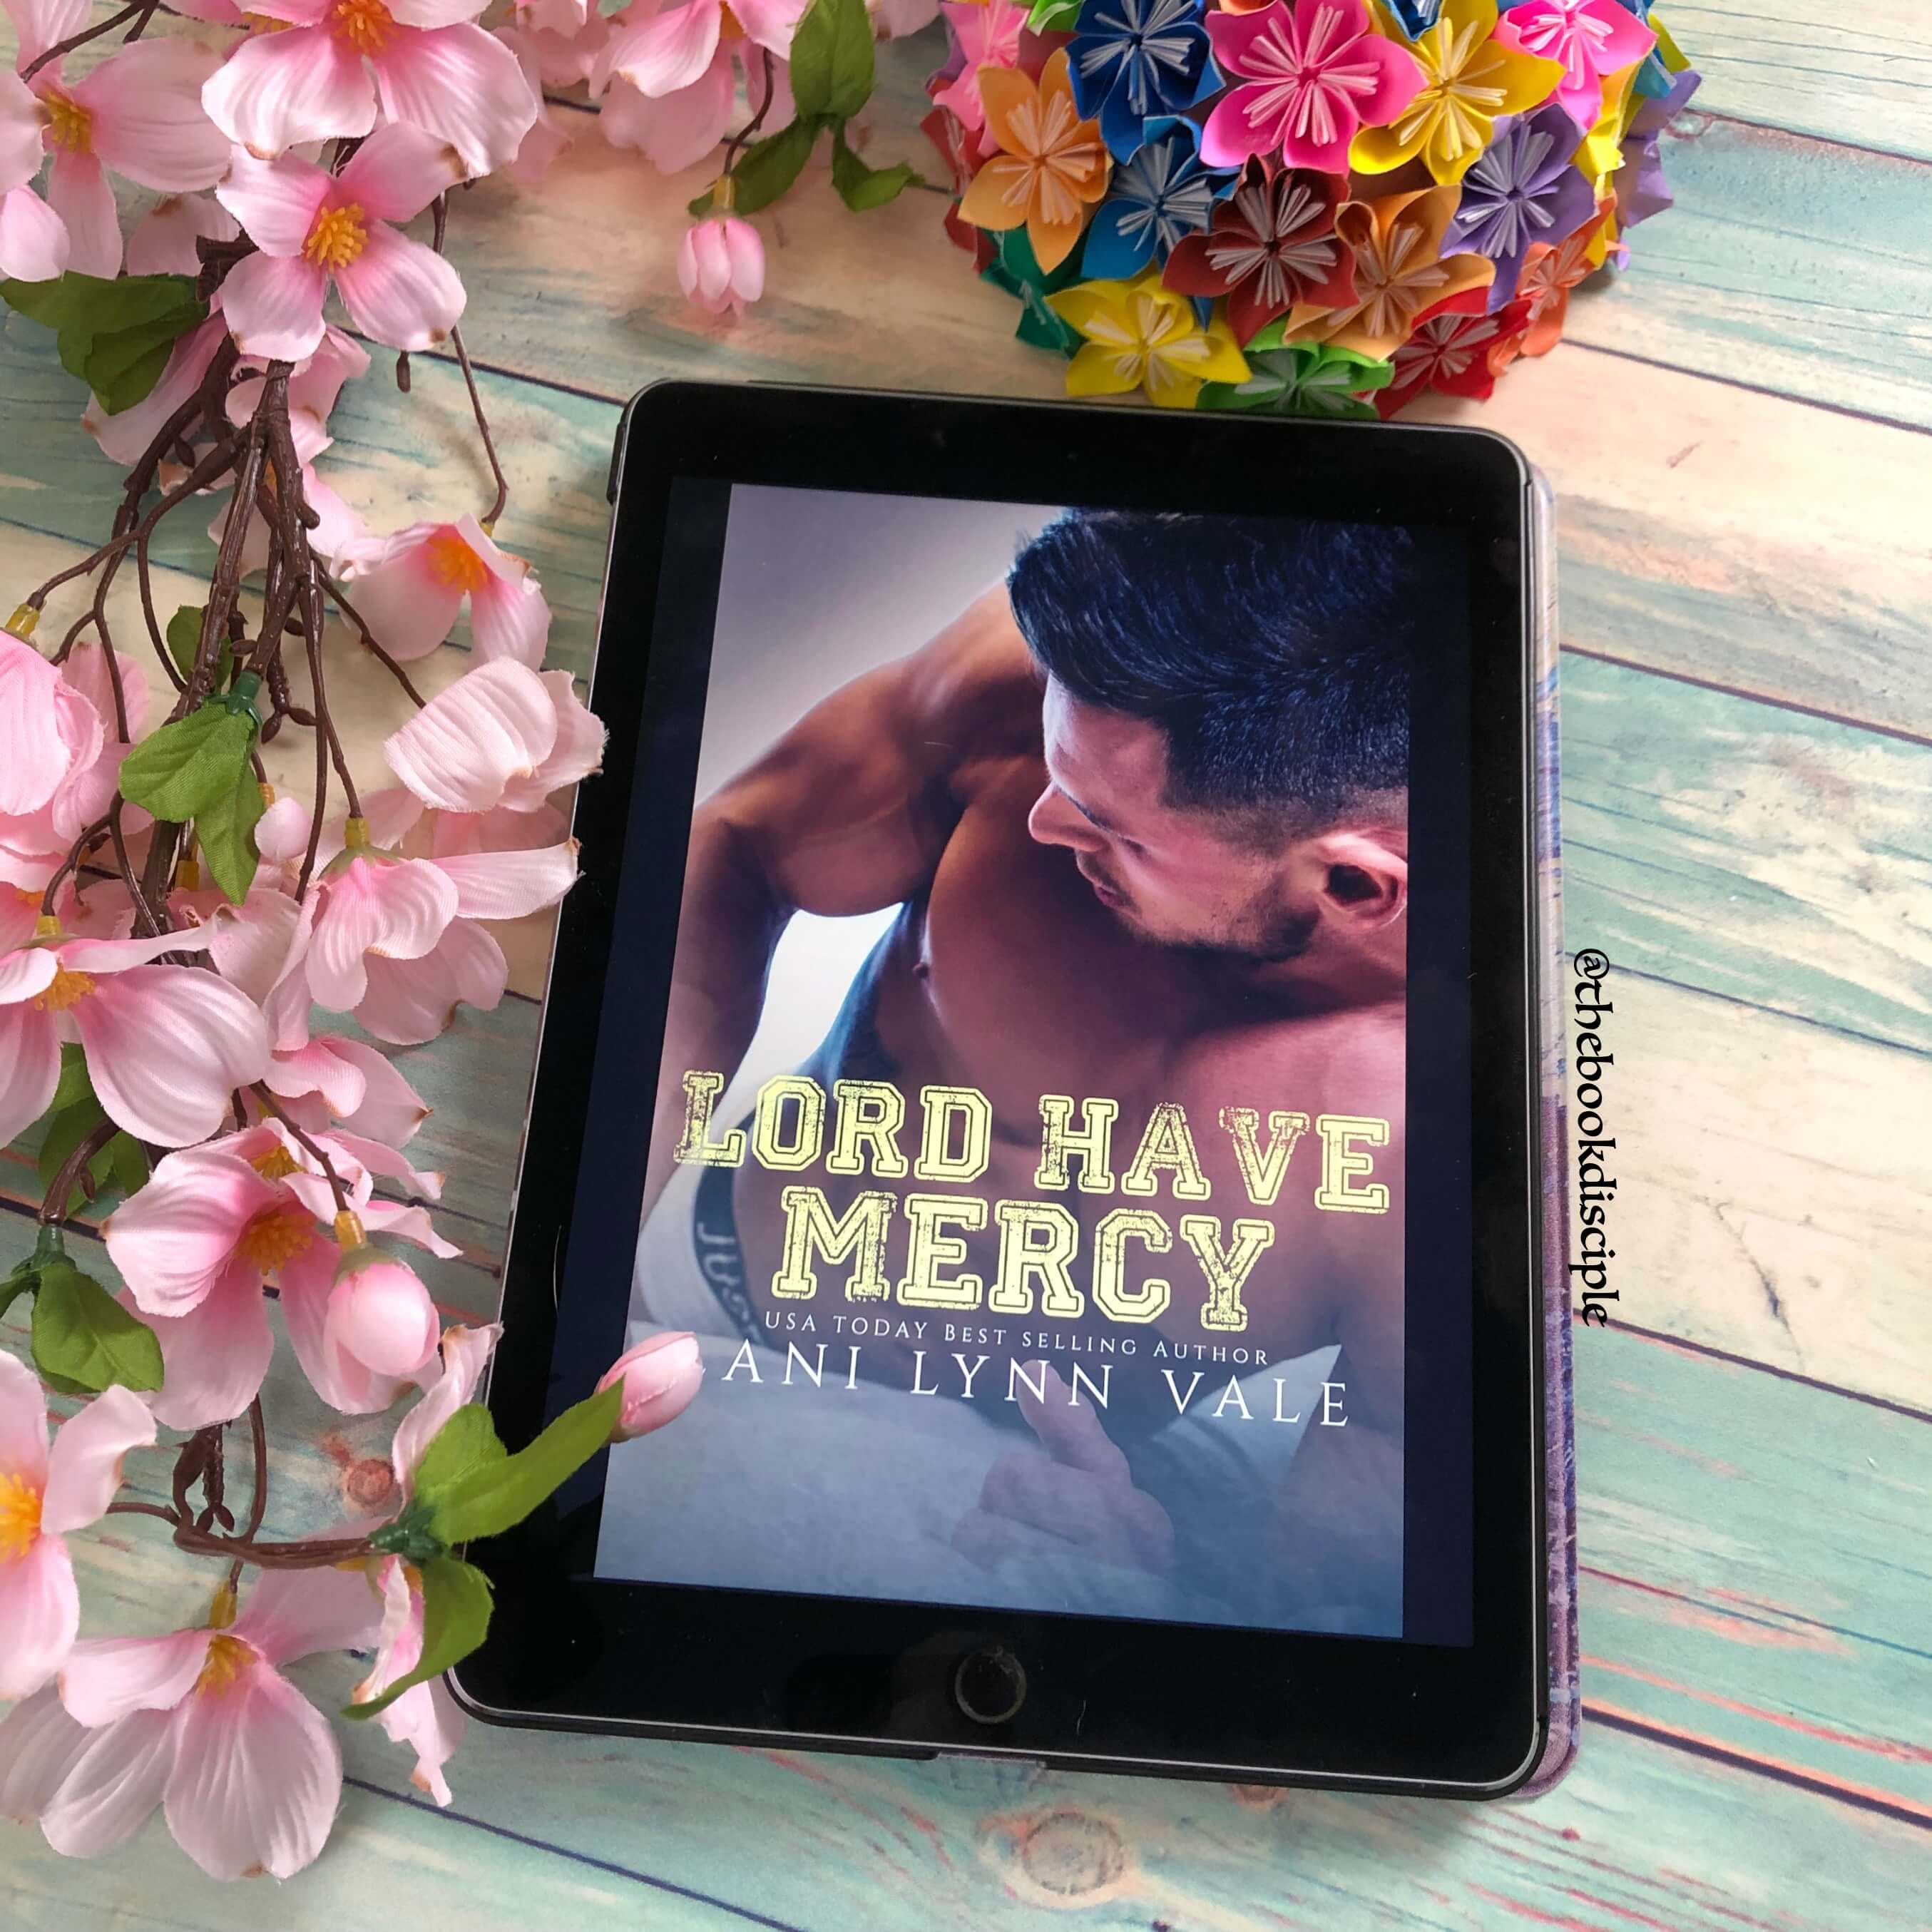 Lord Have Mercy by Lani Lynn Vale